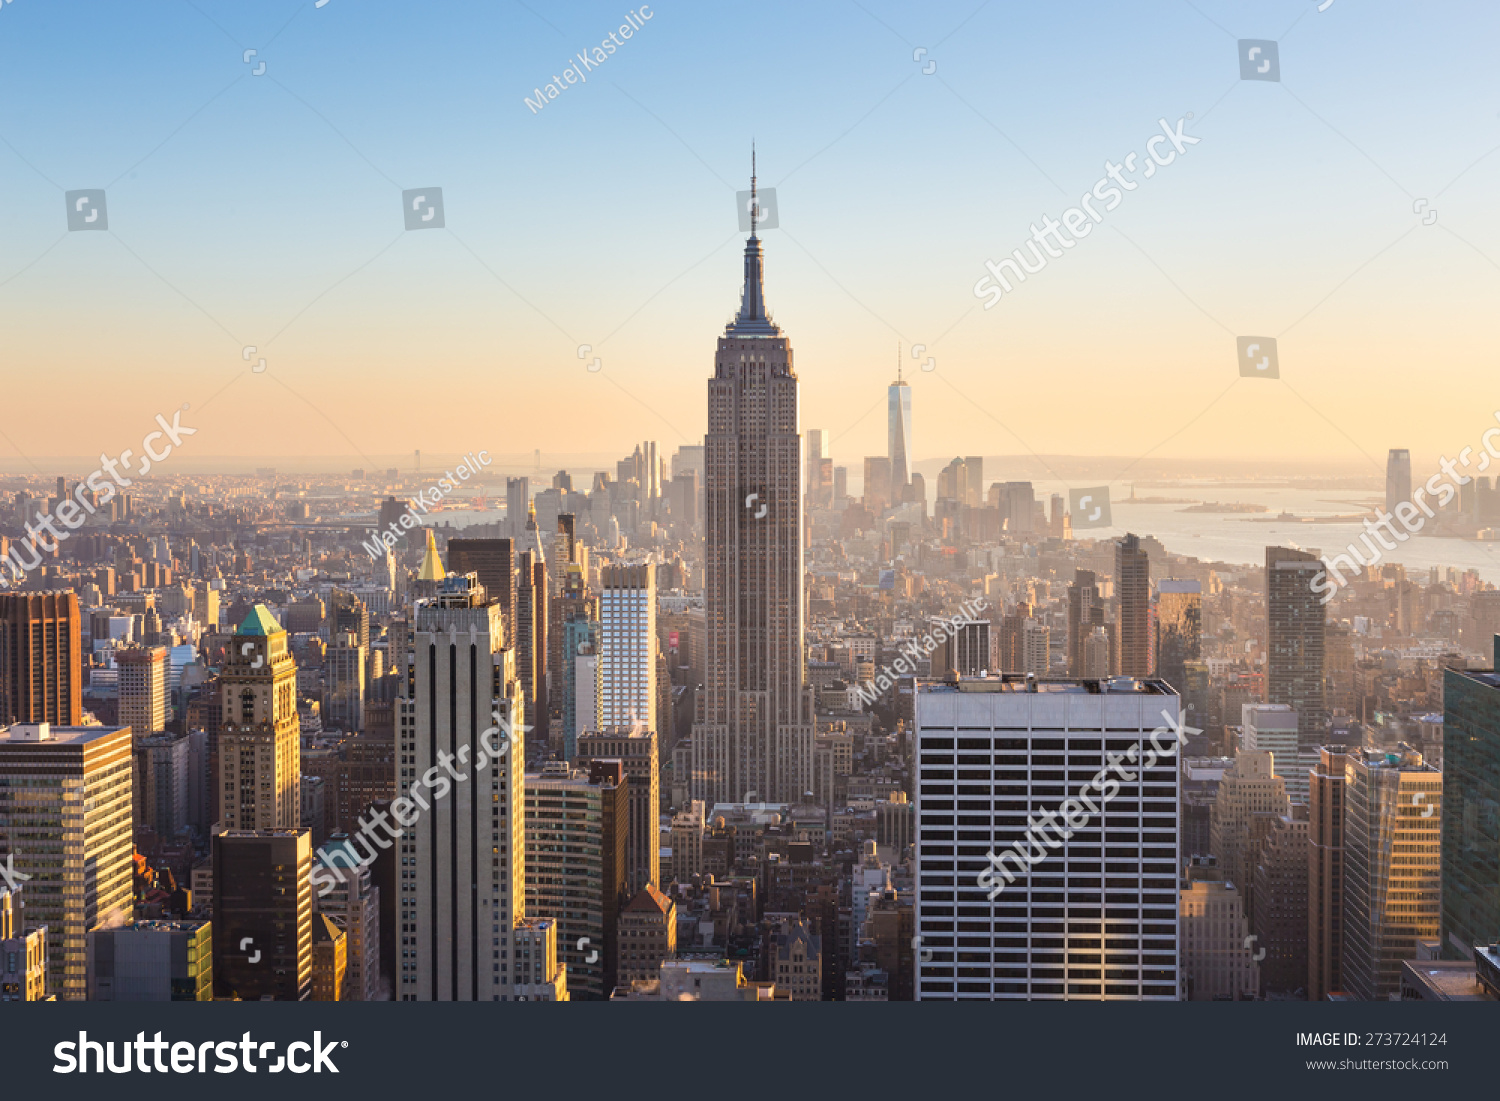 new york city manhattan downtown skyline stock photo 273724124 shutterstock. Black Bedroom Furniture Sets. Home Design Ideas